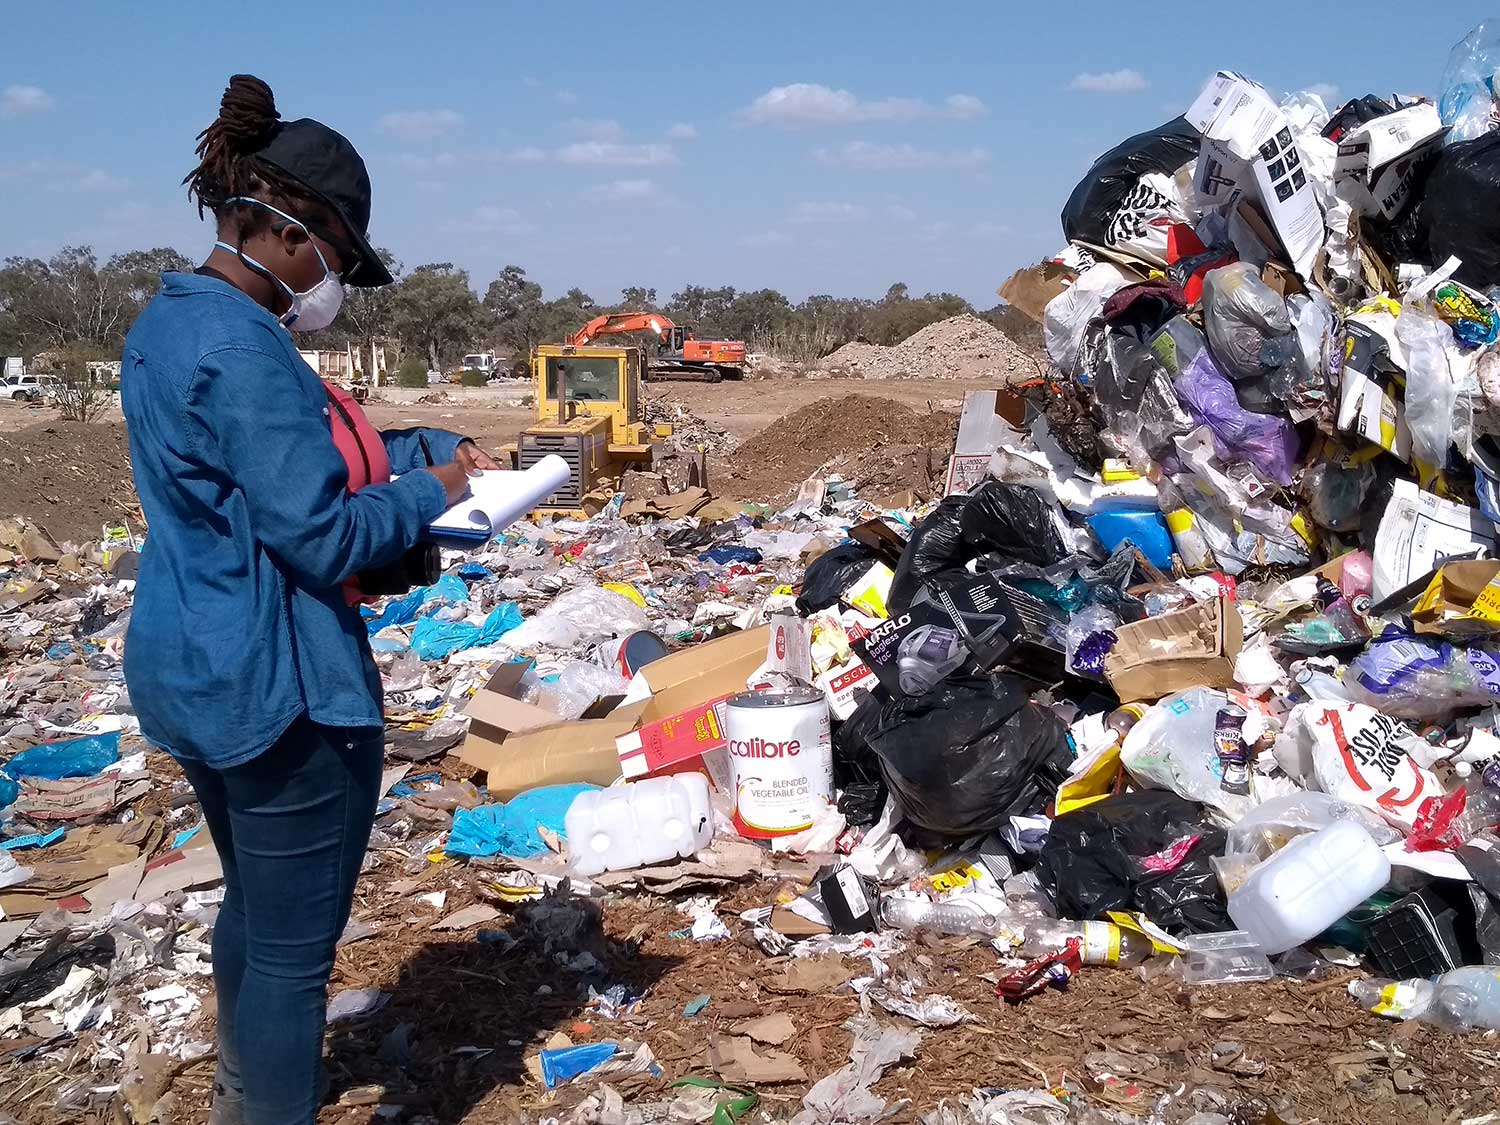 Makrita Solitei, Walgett waste audit